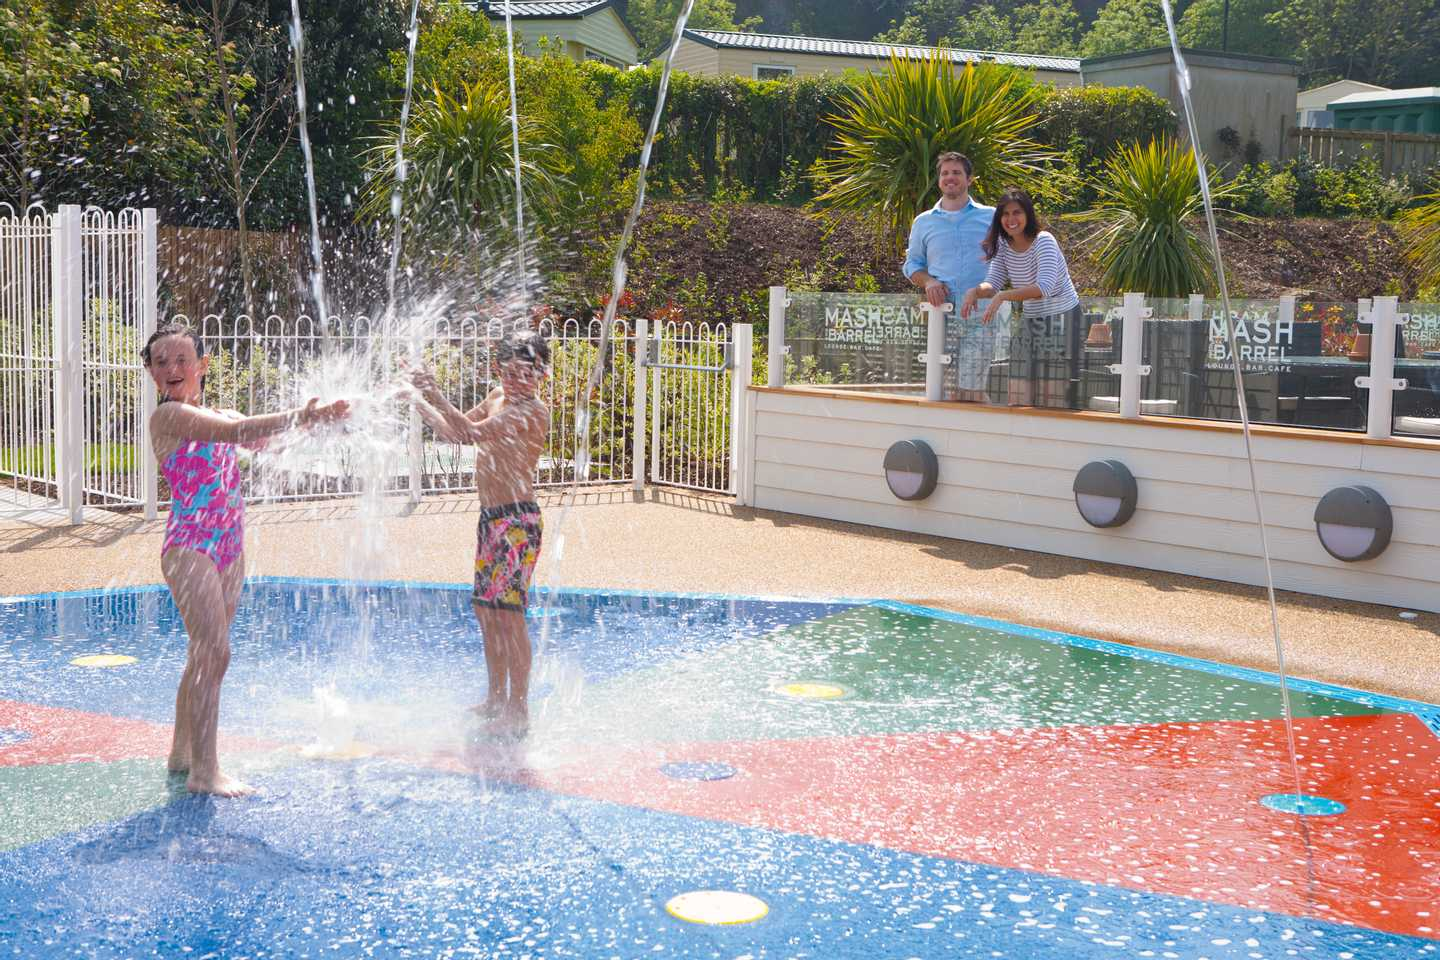 Children splashing around the splash area at Kiln Park